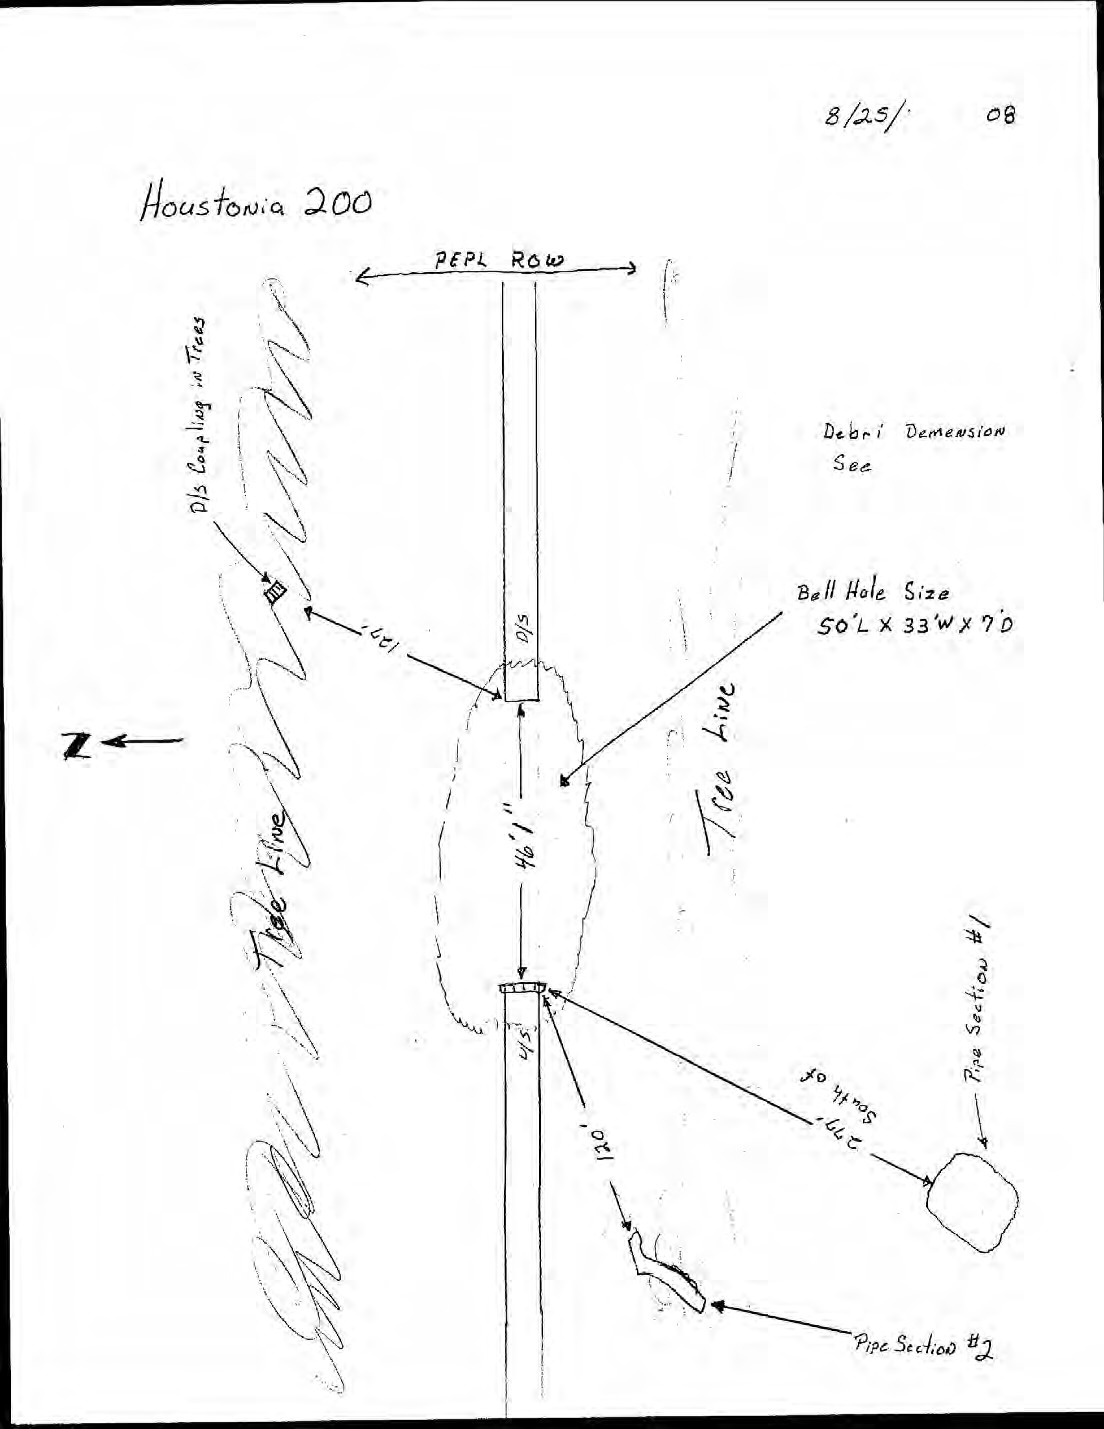 1104x1429 Diagram: Pilot Grove explosion, in Pilot Grove, MO PEPL explosion, by John S. Quarterman, for SpectraBusters.org, 25 August 2008